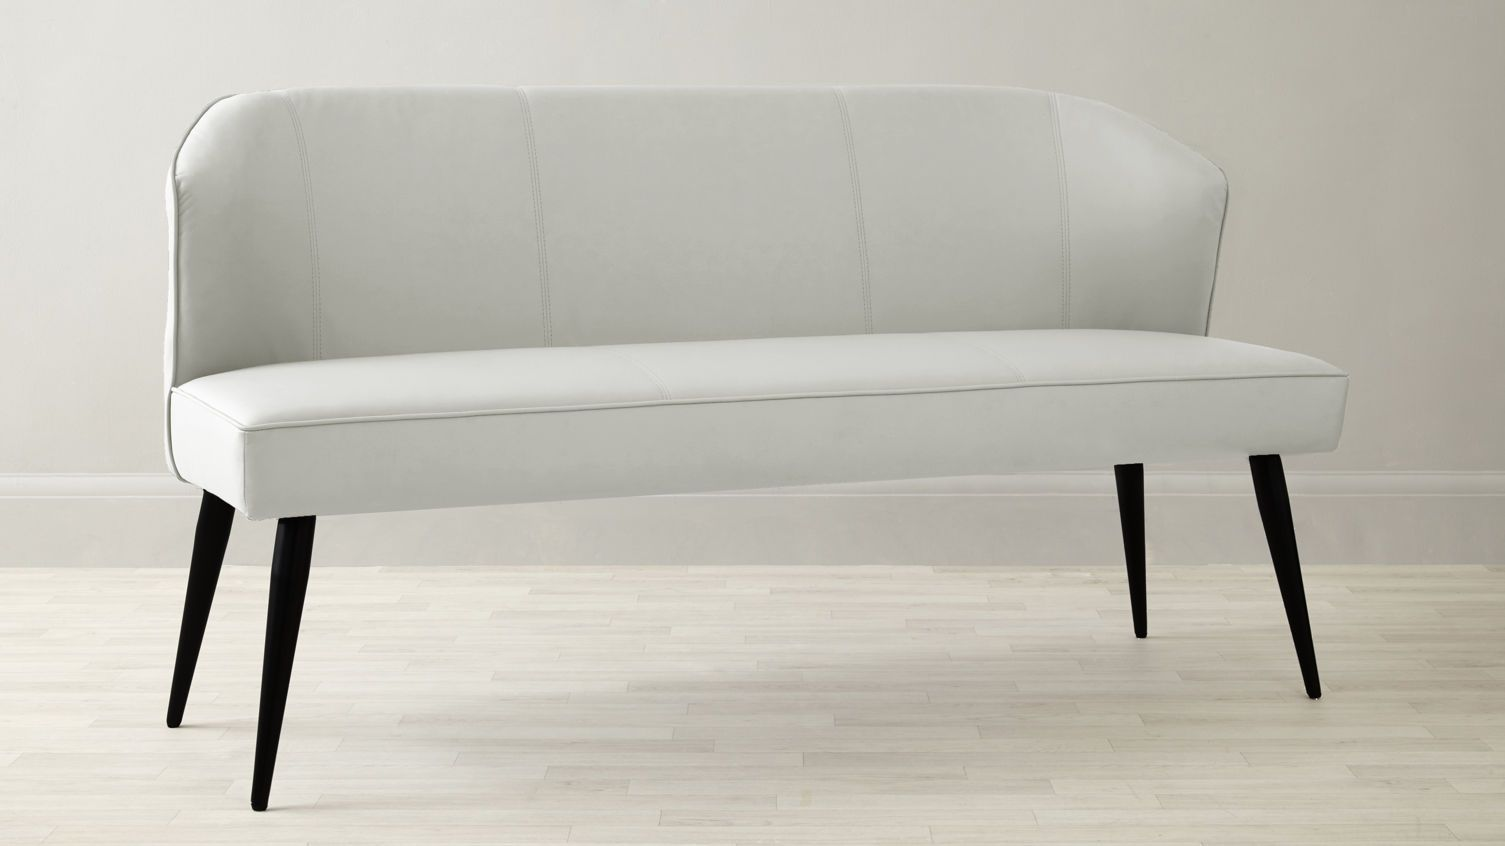 Mellow 3 Seater Bench With Backrest